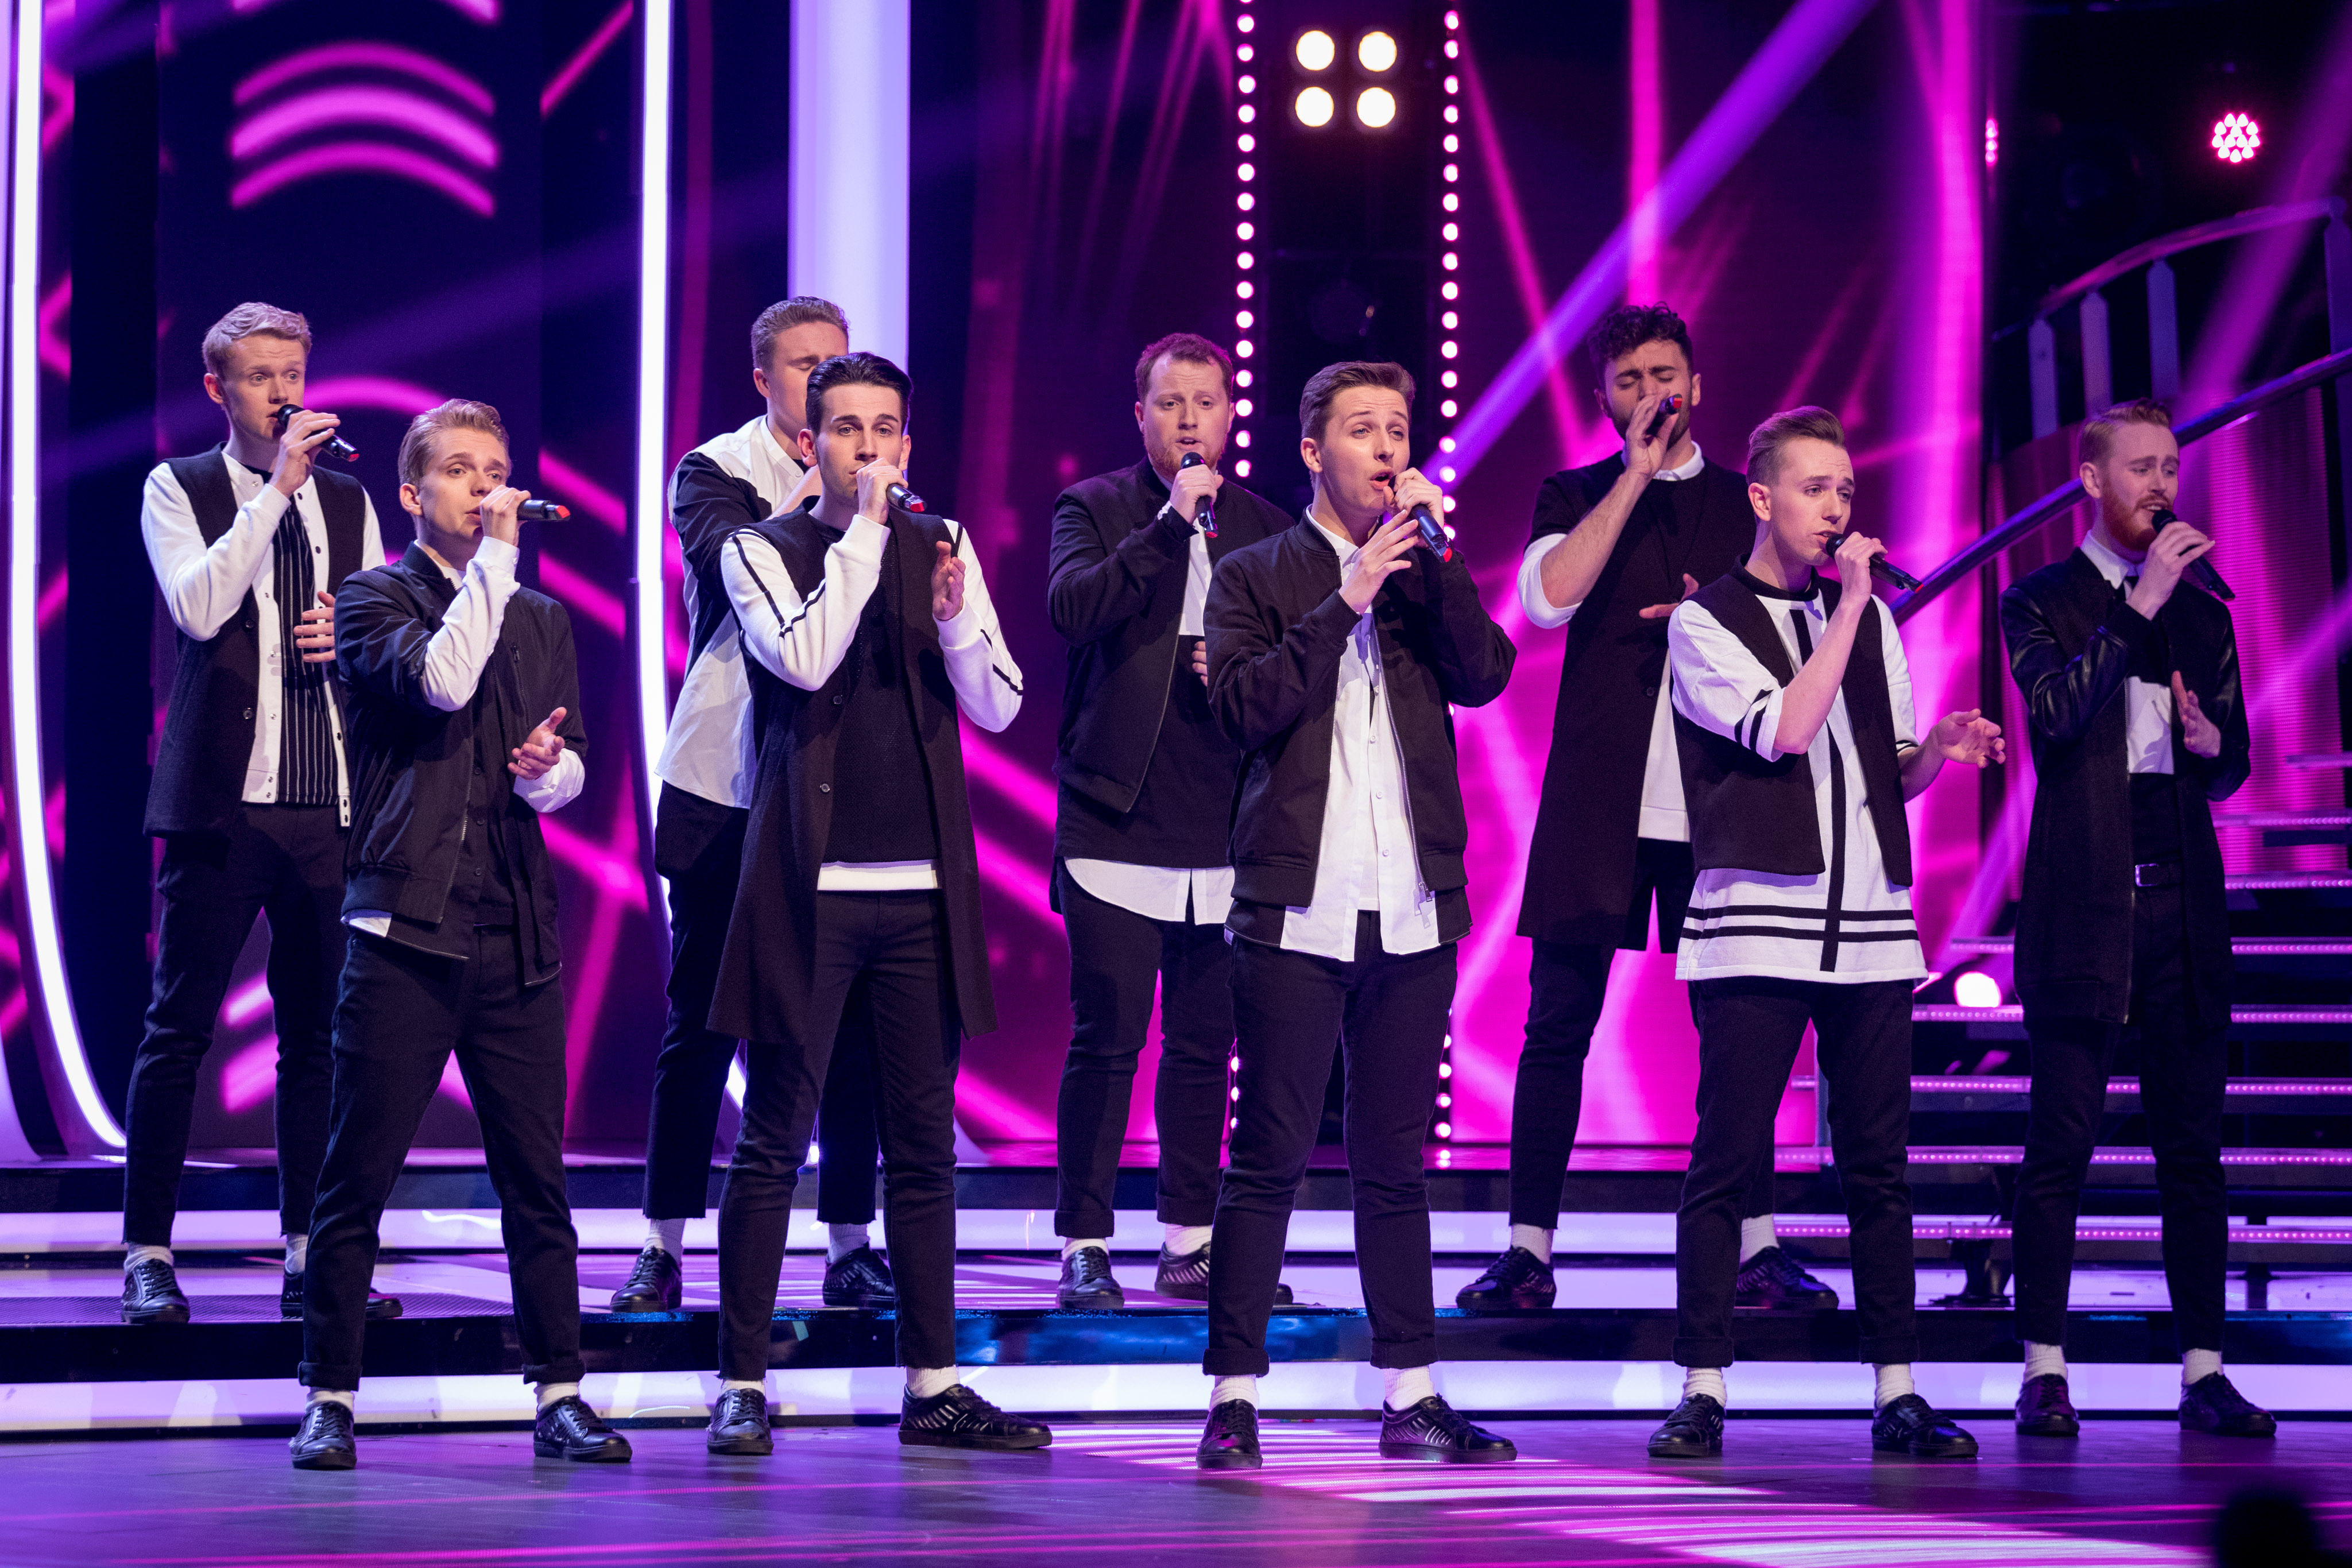 Six choirs to compete in pitch battle final shropshire star all the kings men bbc fandeluxe Ebook collections